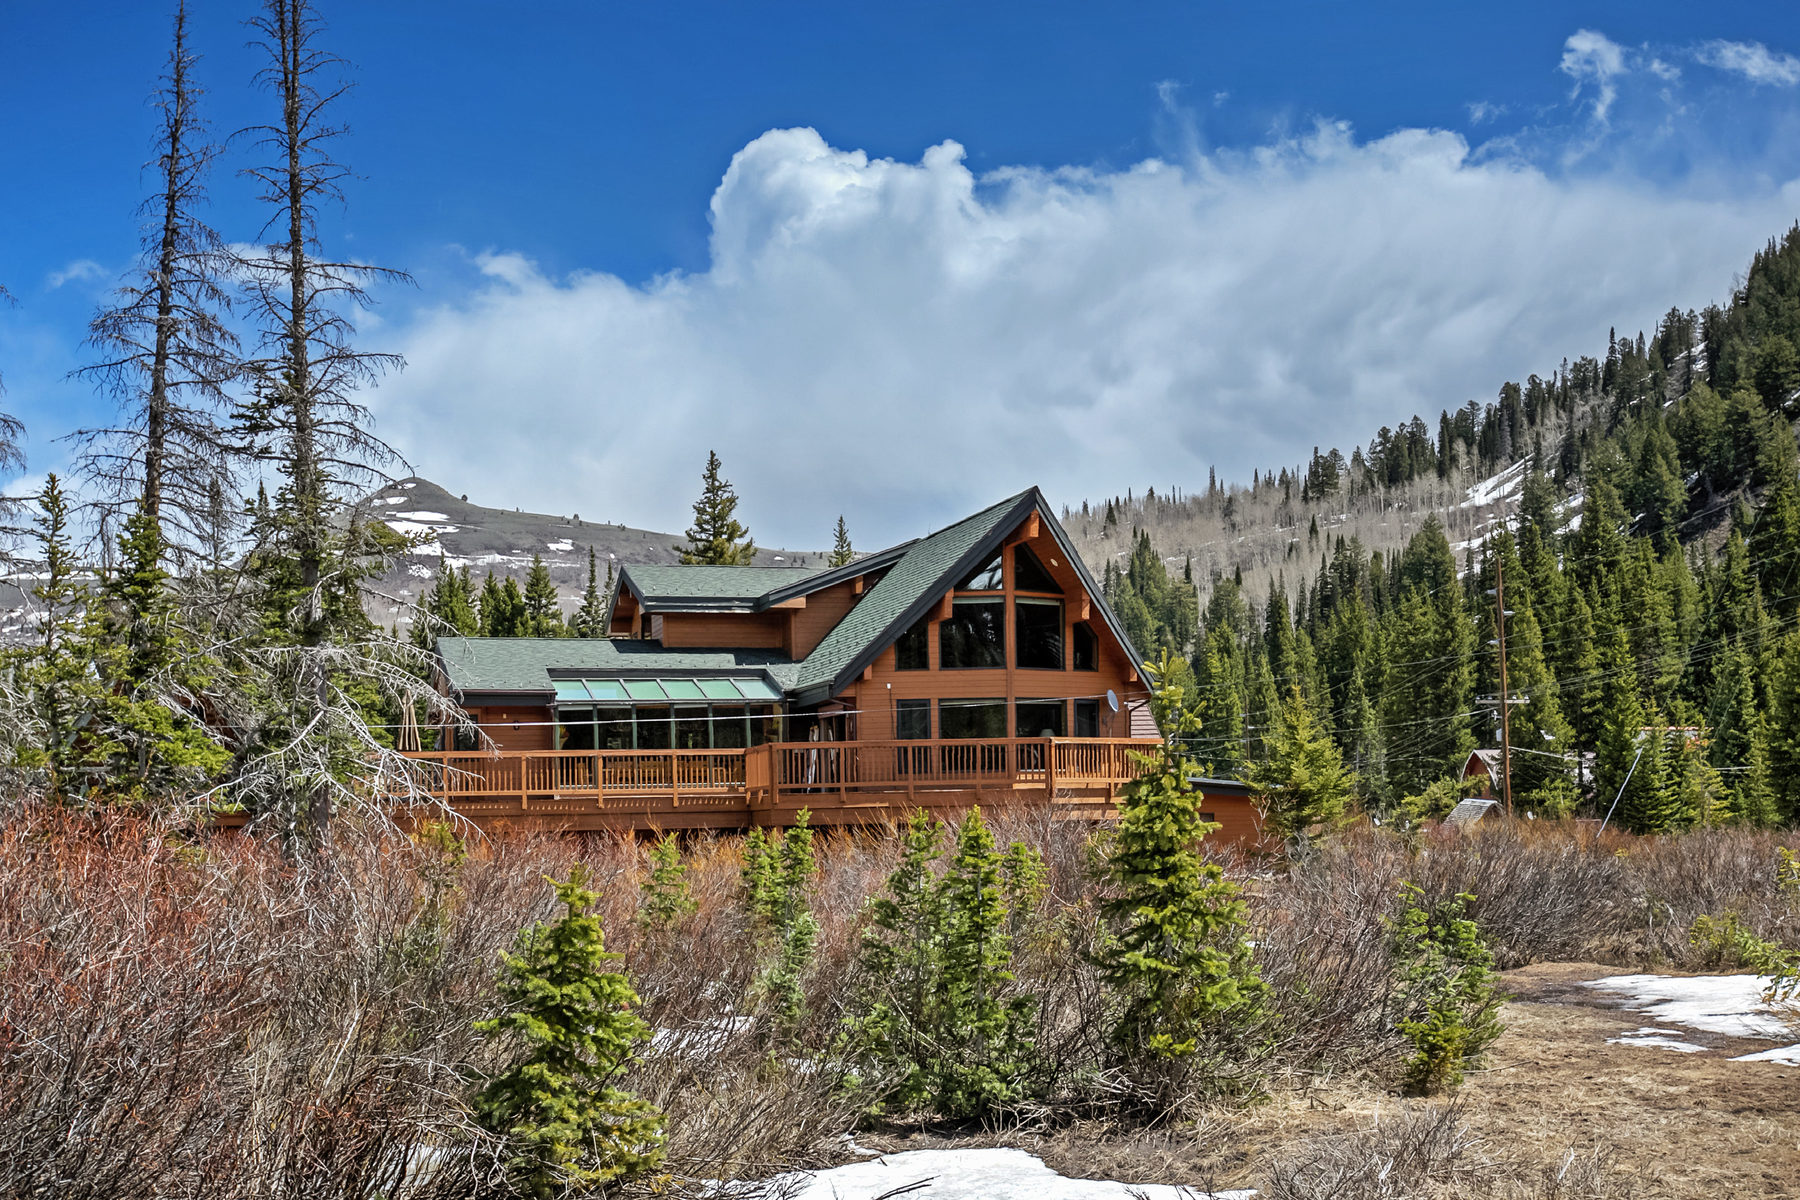 Maison unifamiliale pour l Vente à Spectacular Year Round Luxury Ski Home 7958 S Big Cottonwood Canyon Rd Brighton, Utah, 84121 États-Unis